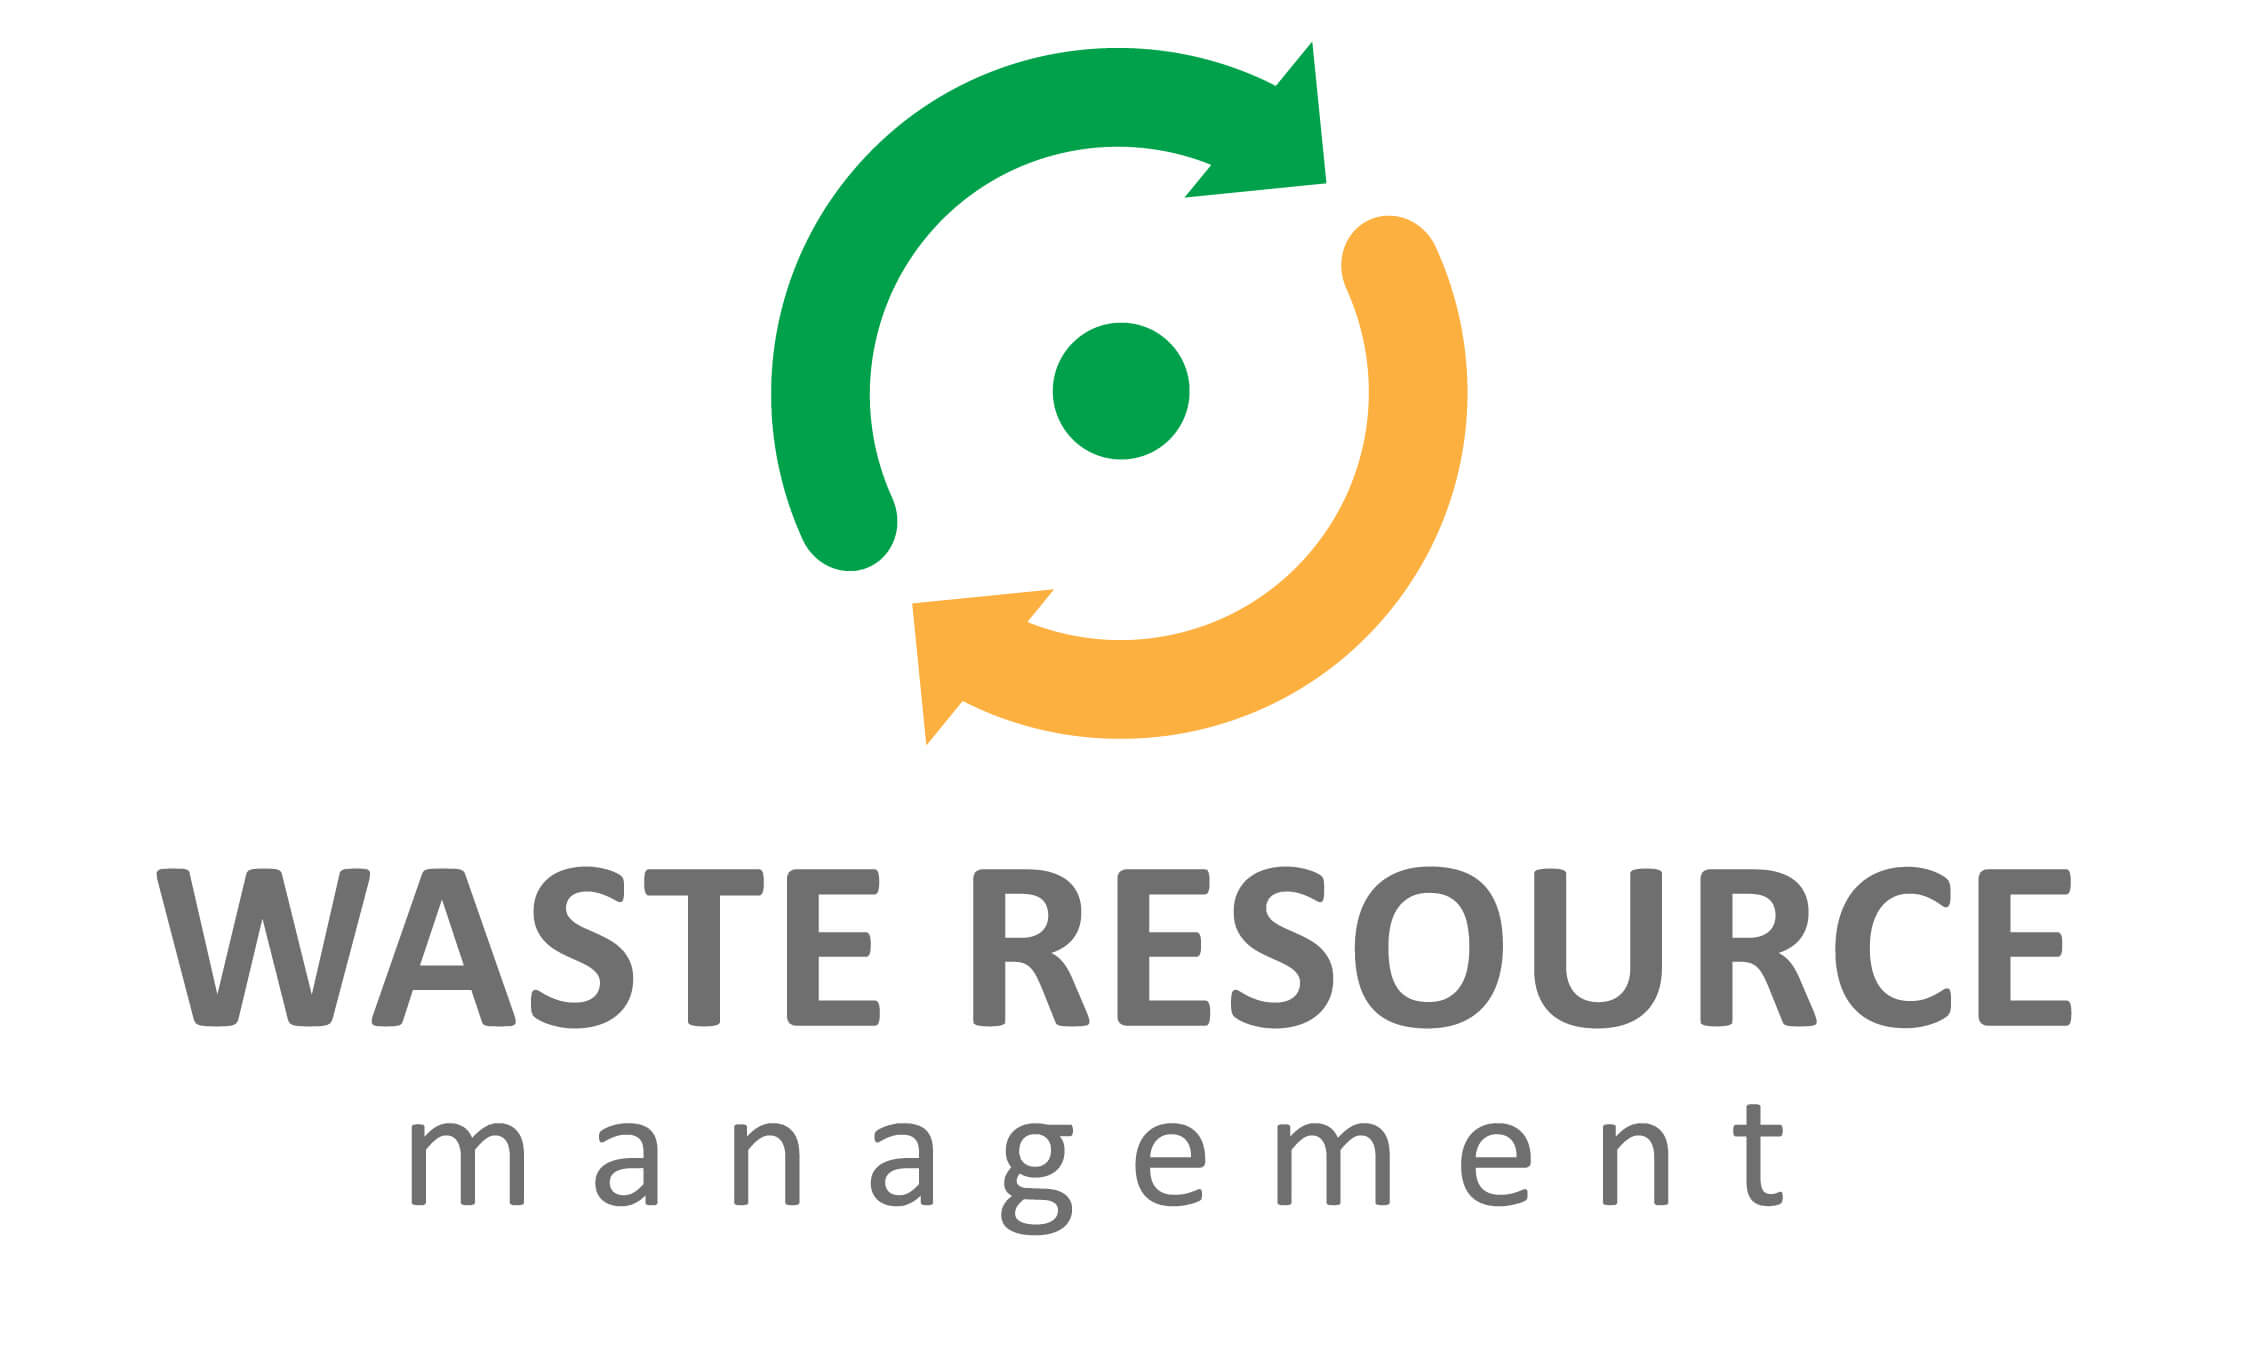 Waste Resources management - Waste Management Logistics